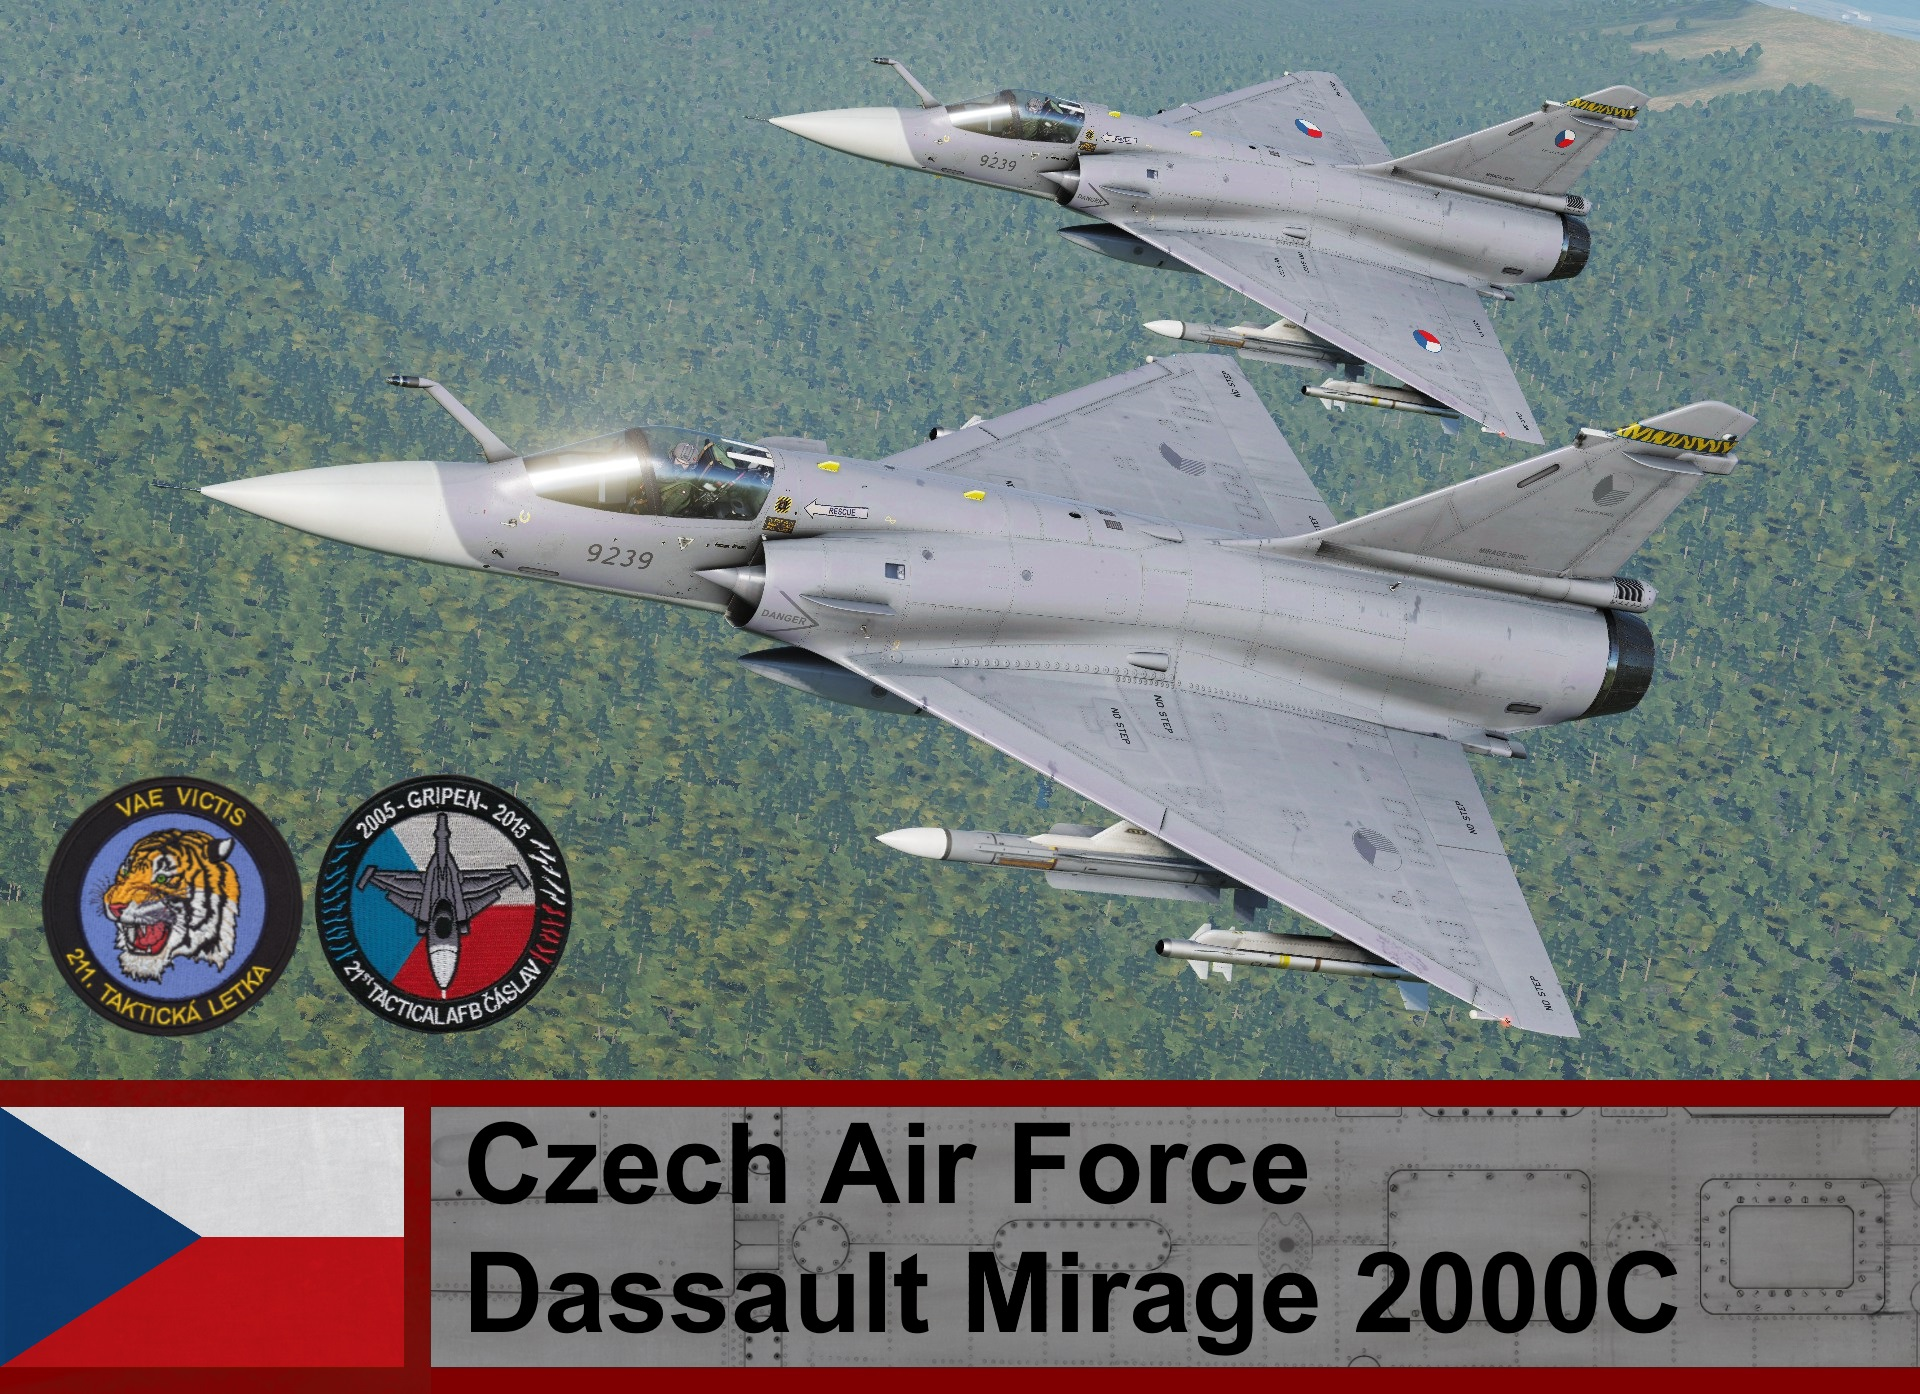 Czech Air Force Mirage-2000C / 211 Squadron (Fictional)